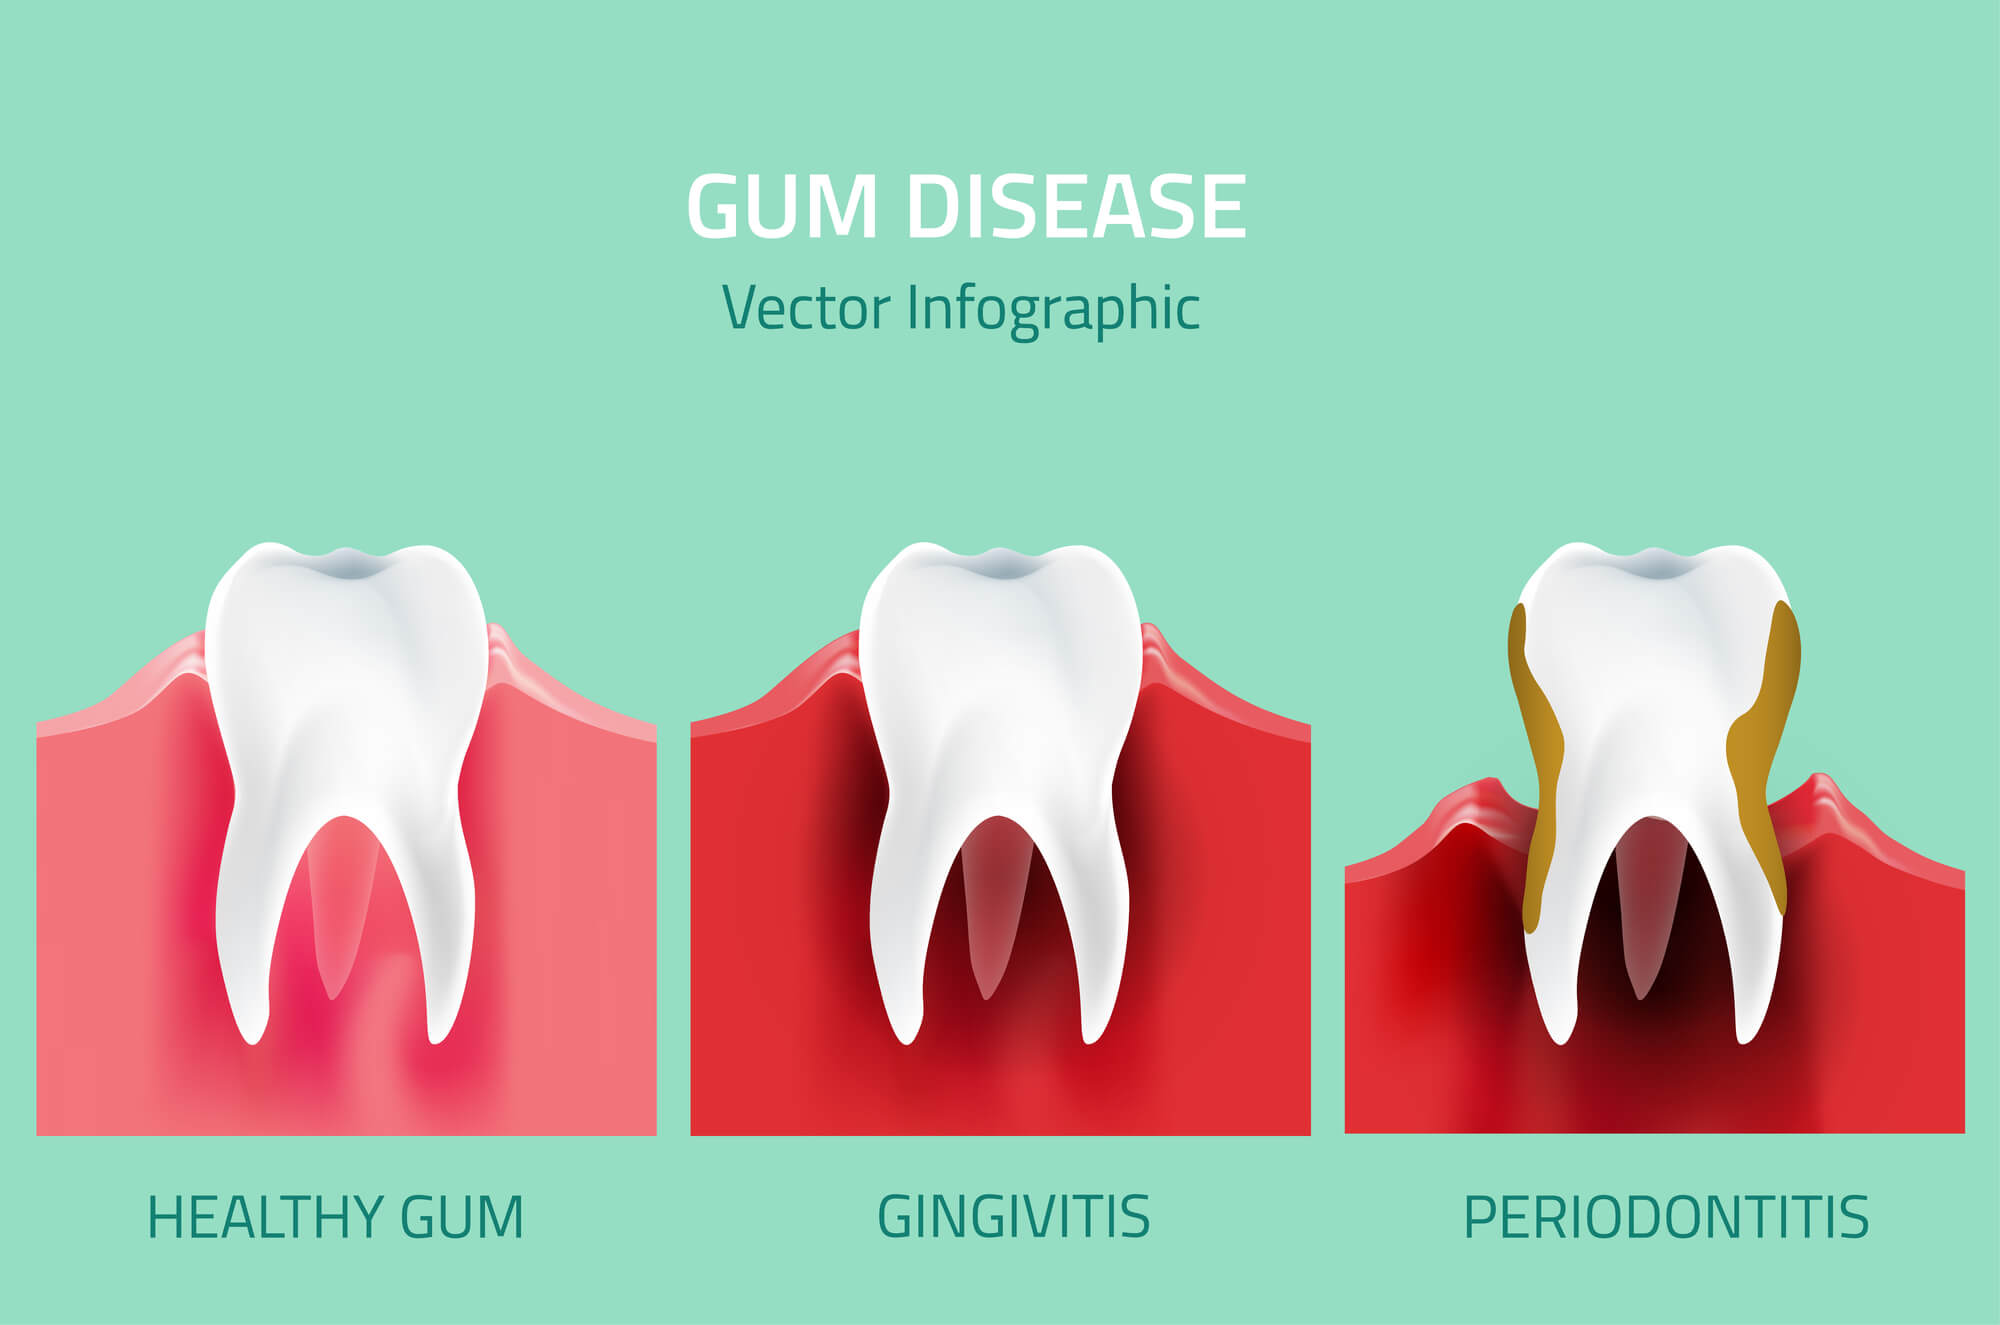 Where can i get Gum Disease Treatment Palm Beach Gardens?